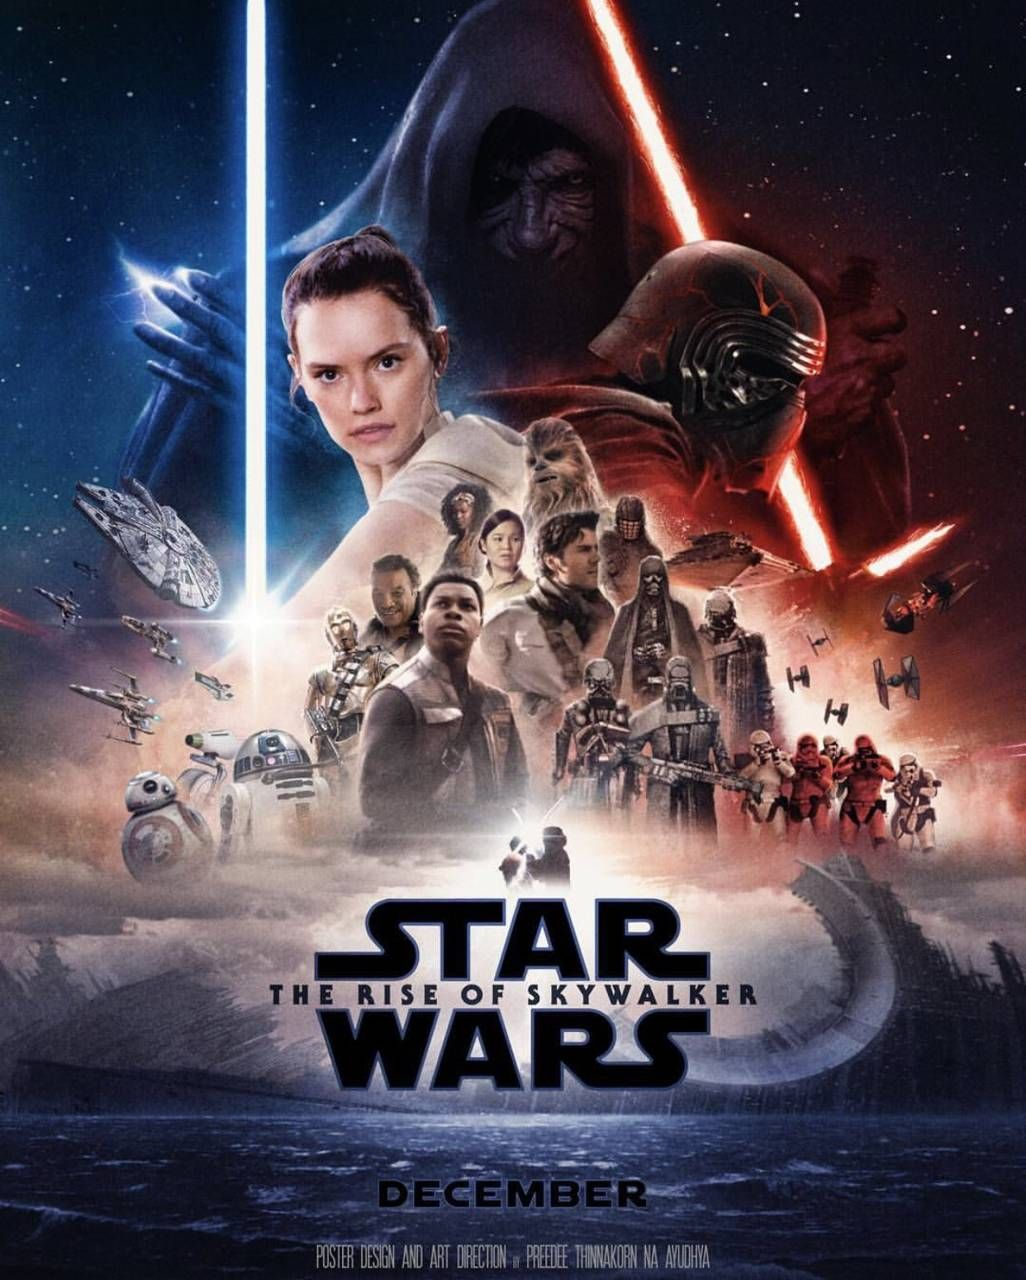 Download Rise Of Skywalker Wallpaper By F0zz13 59 Free On Zedge Now Browse Millions Of Popul Star Wars Movies Posters Star Wars Episodes Star Wars Watch